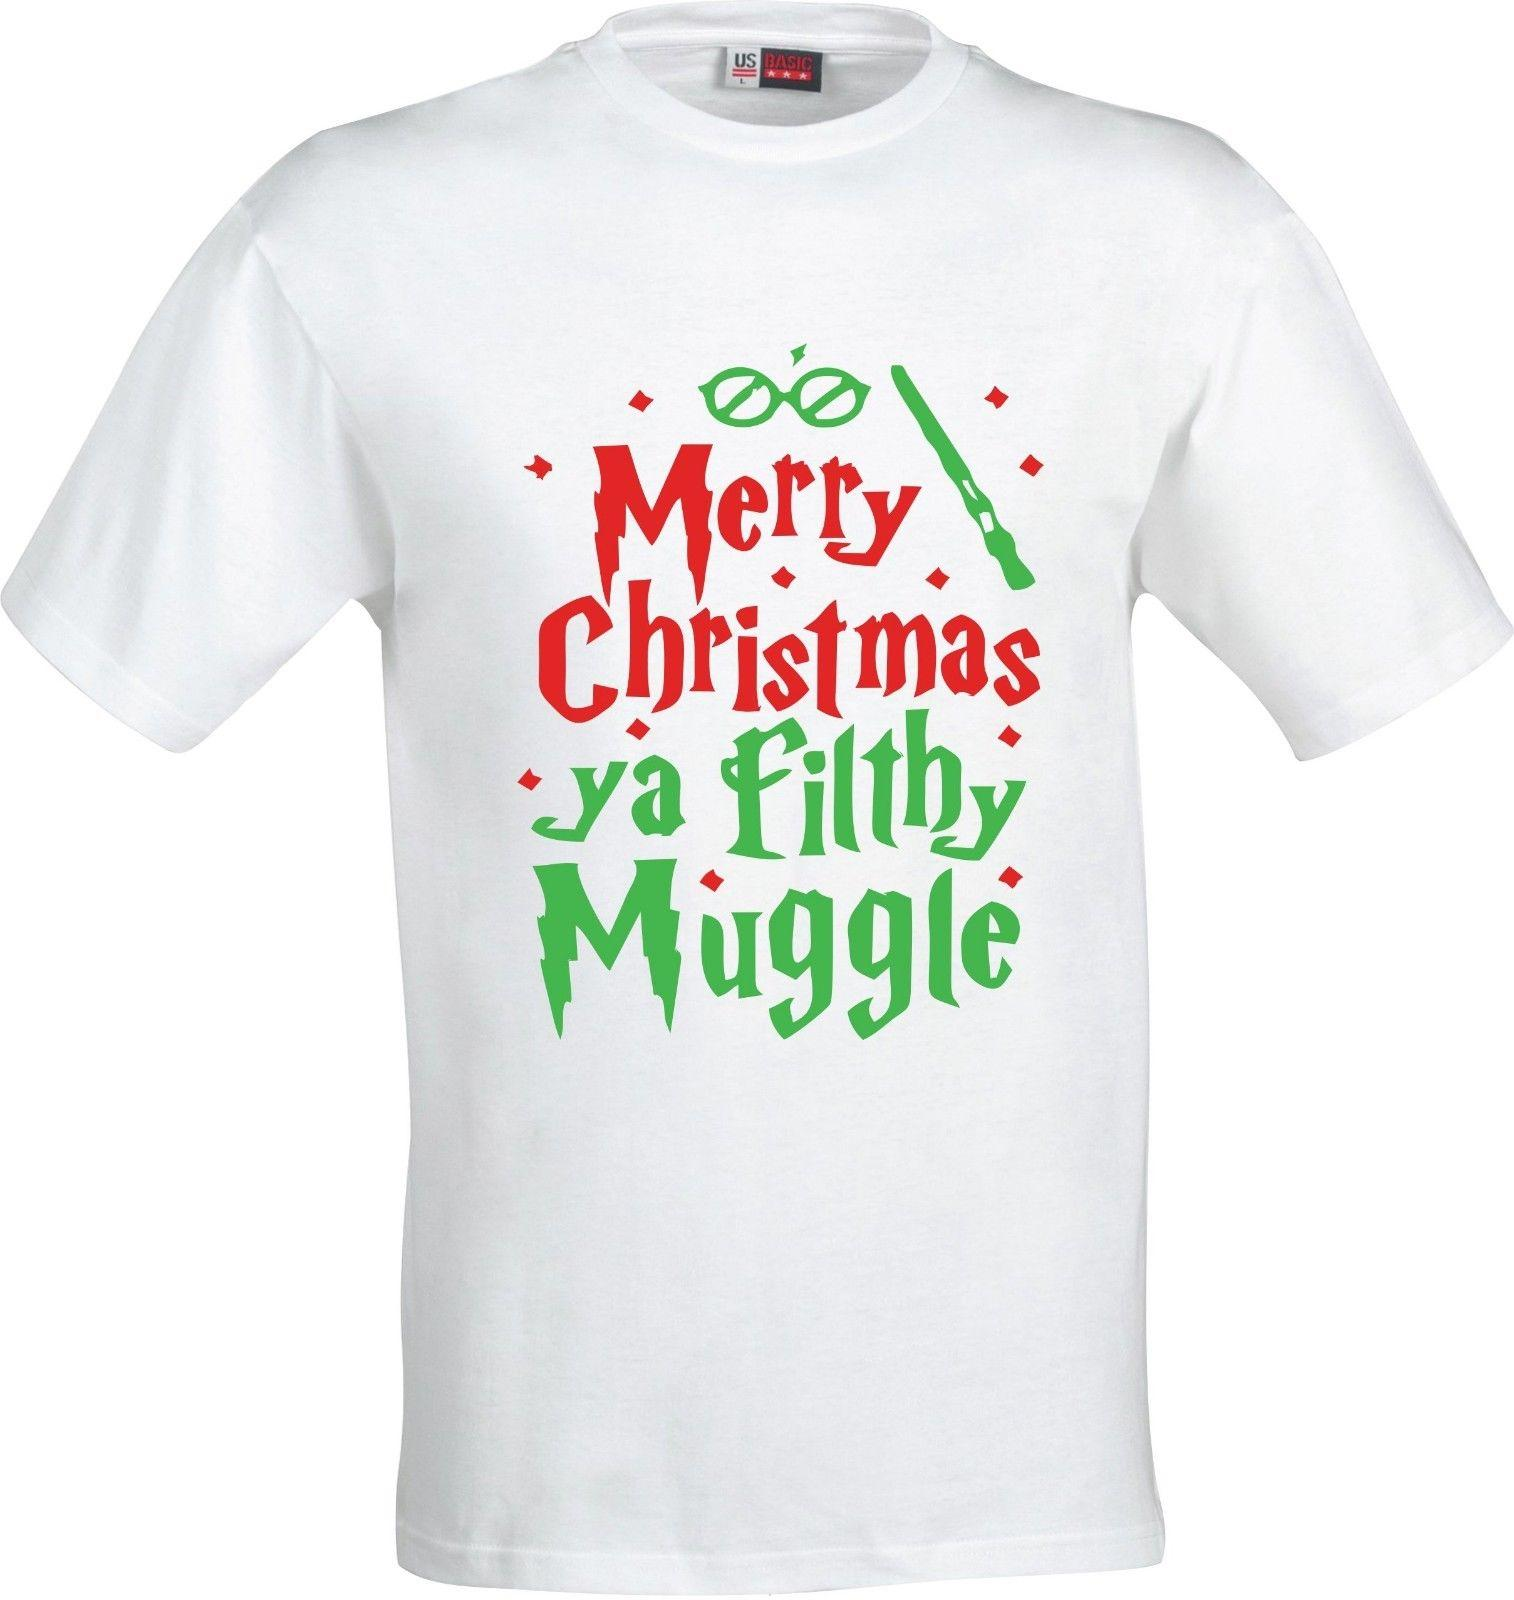 1fd93659 MERRY CHRISTMAS YOU FILTHY MUGGLE HARRY POTTER FULL COLOR SUBLIMATION T  SHIRT Short Sleeve Plus Size T Shirt T Shirt Shopping Awesome Tee Shirts  From ...